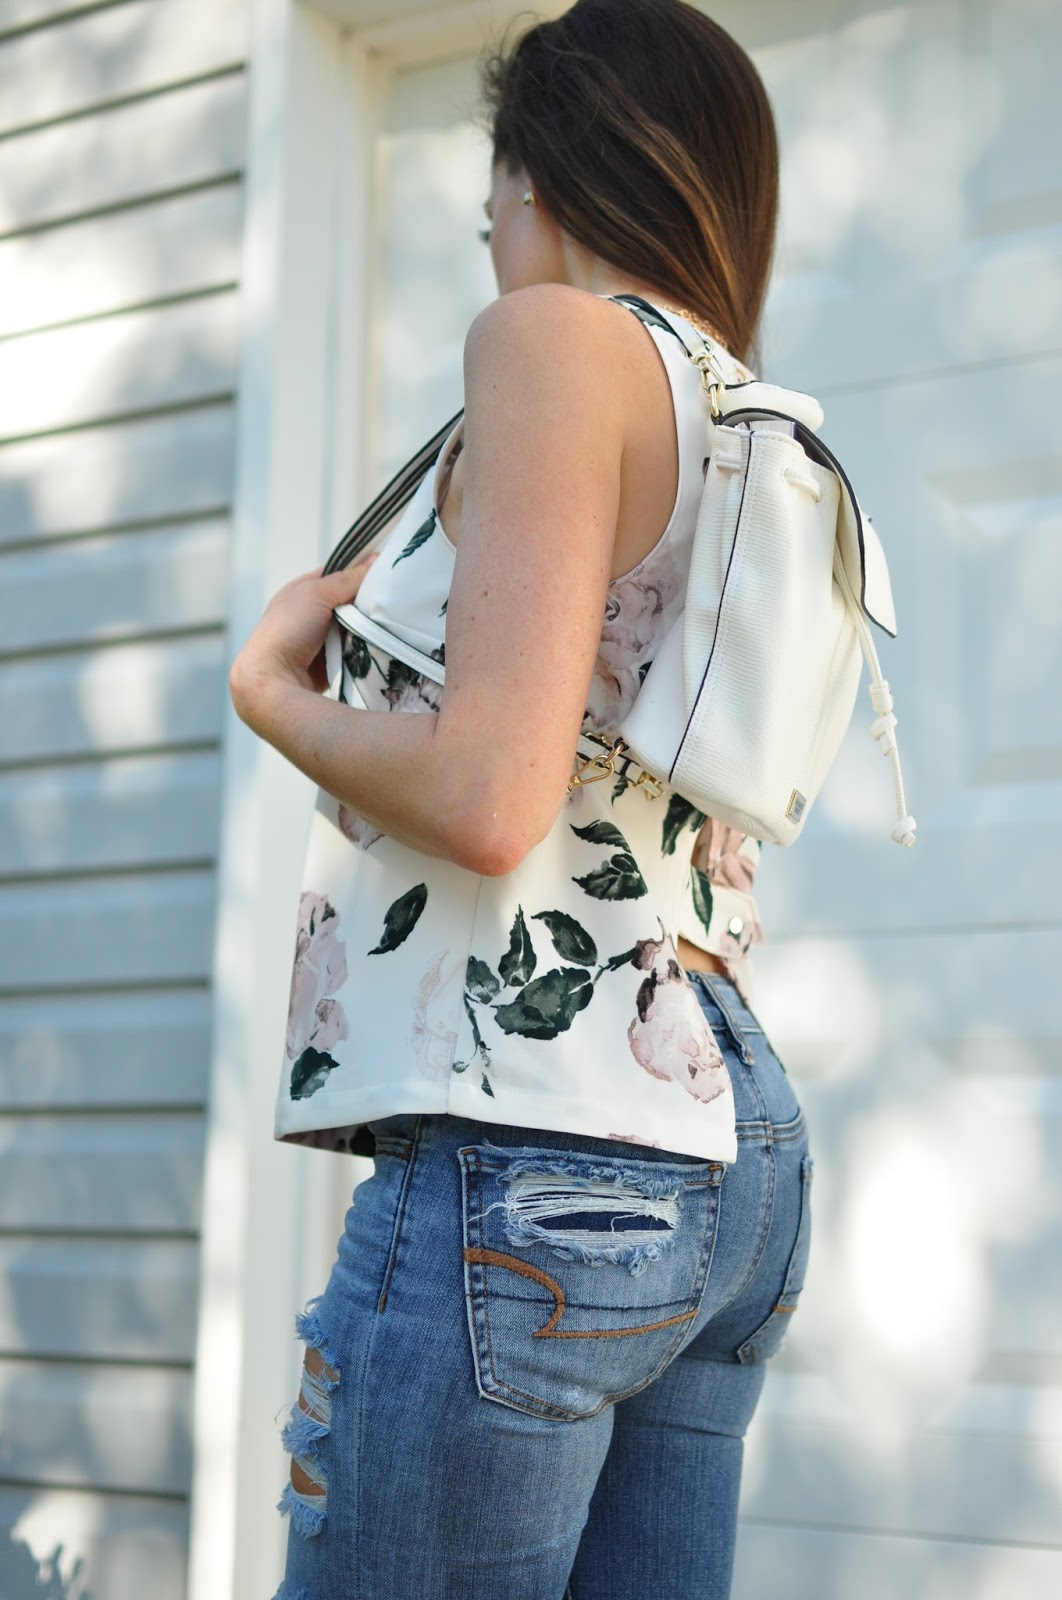 Erica Valentin modeling the Floral Open Back Top from Dynamite Clothing